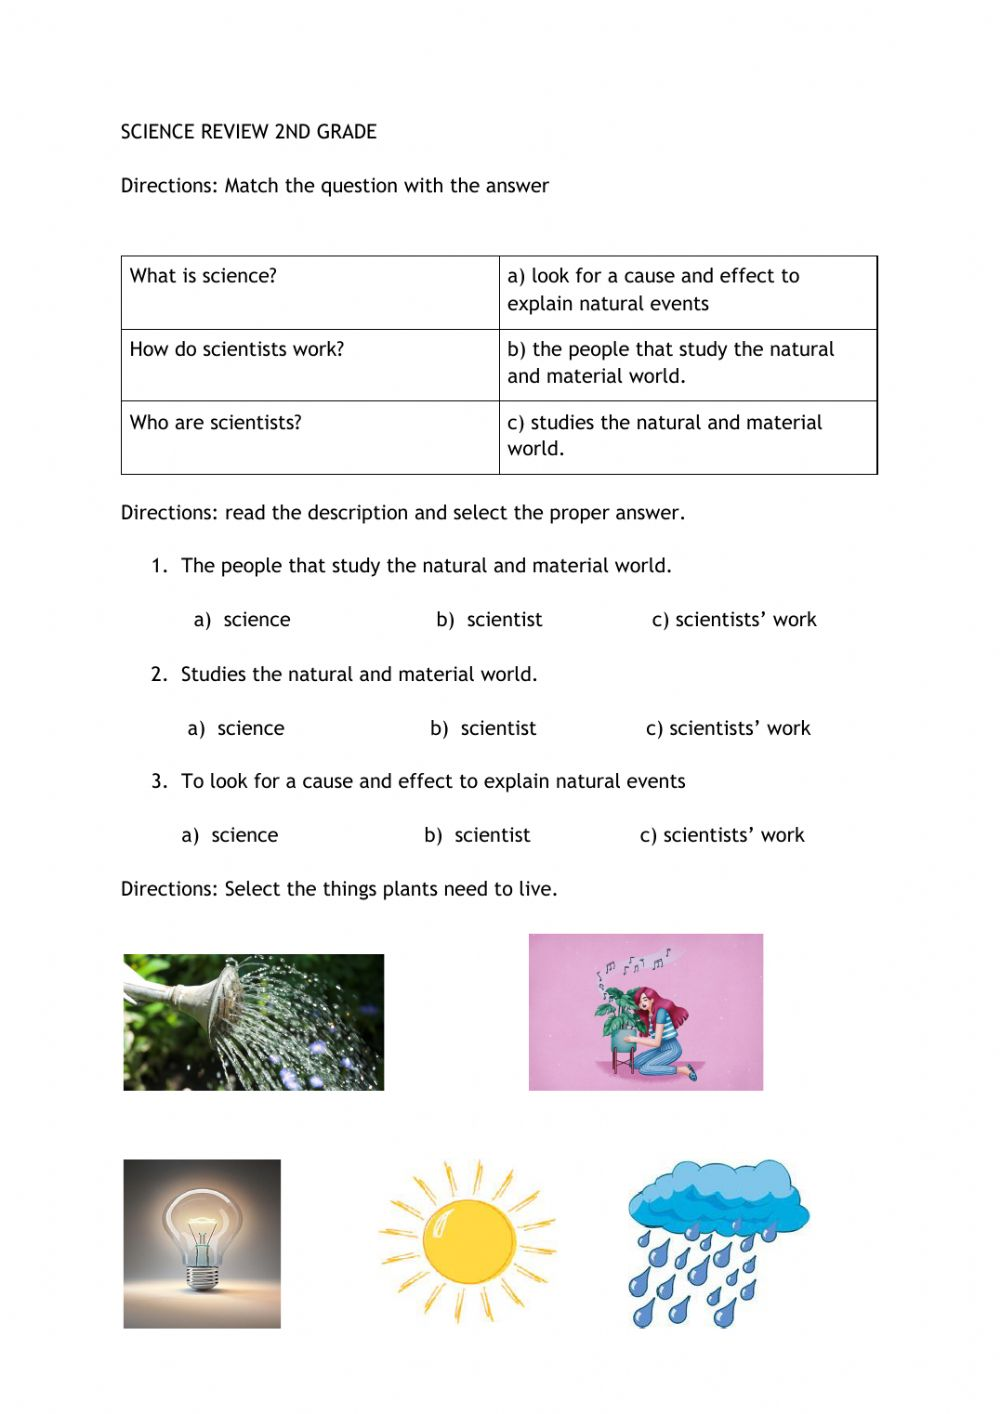 medium resolution of SCIENCE REVIEW 2nd grade interactive worksheet